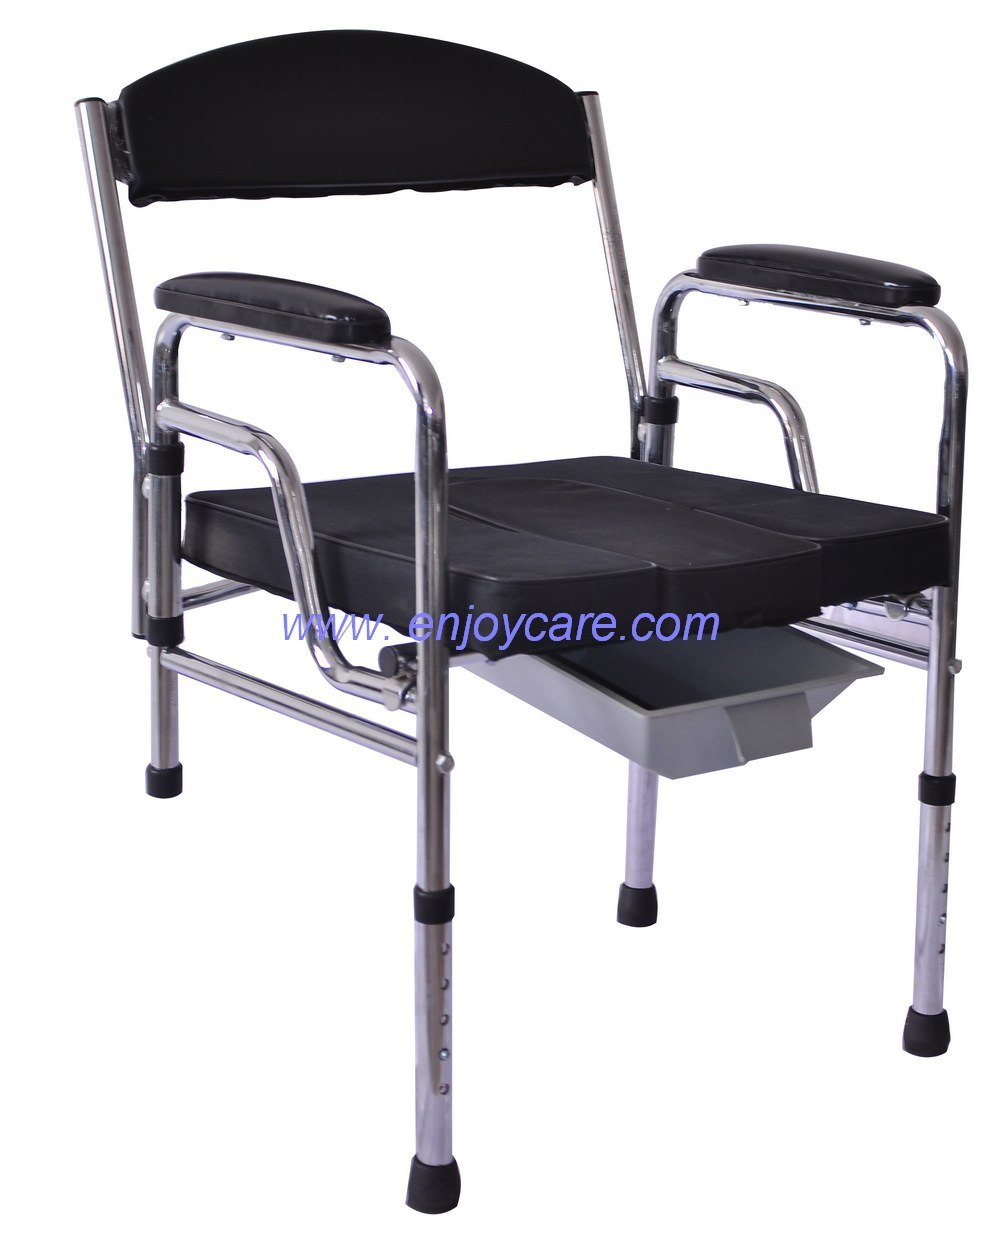 Chairs for disabled adults are